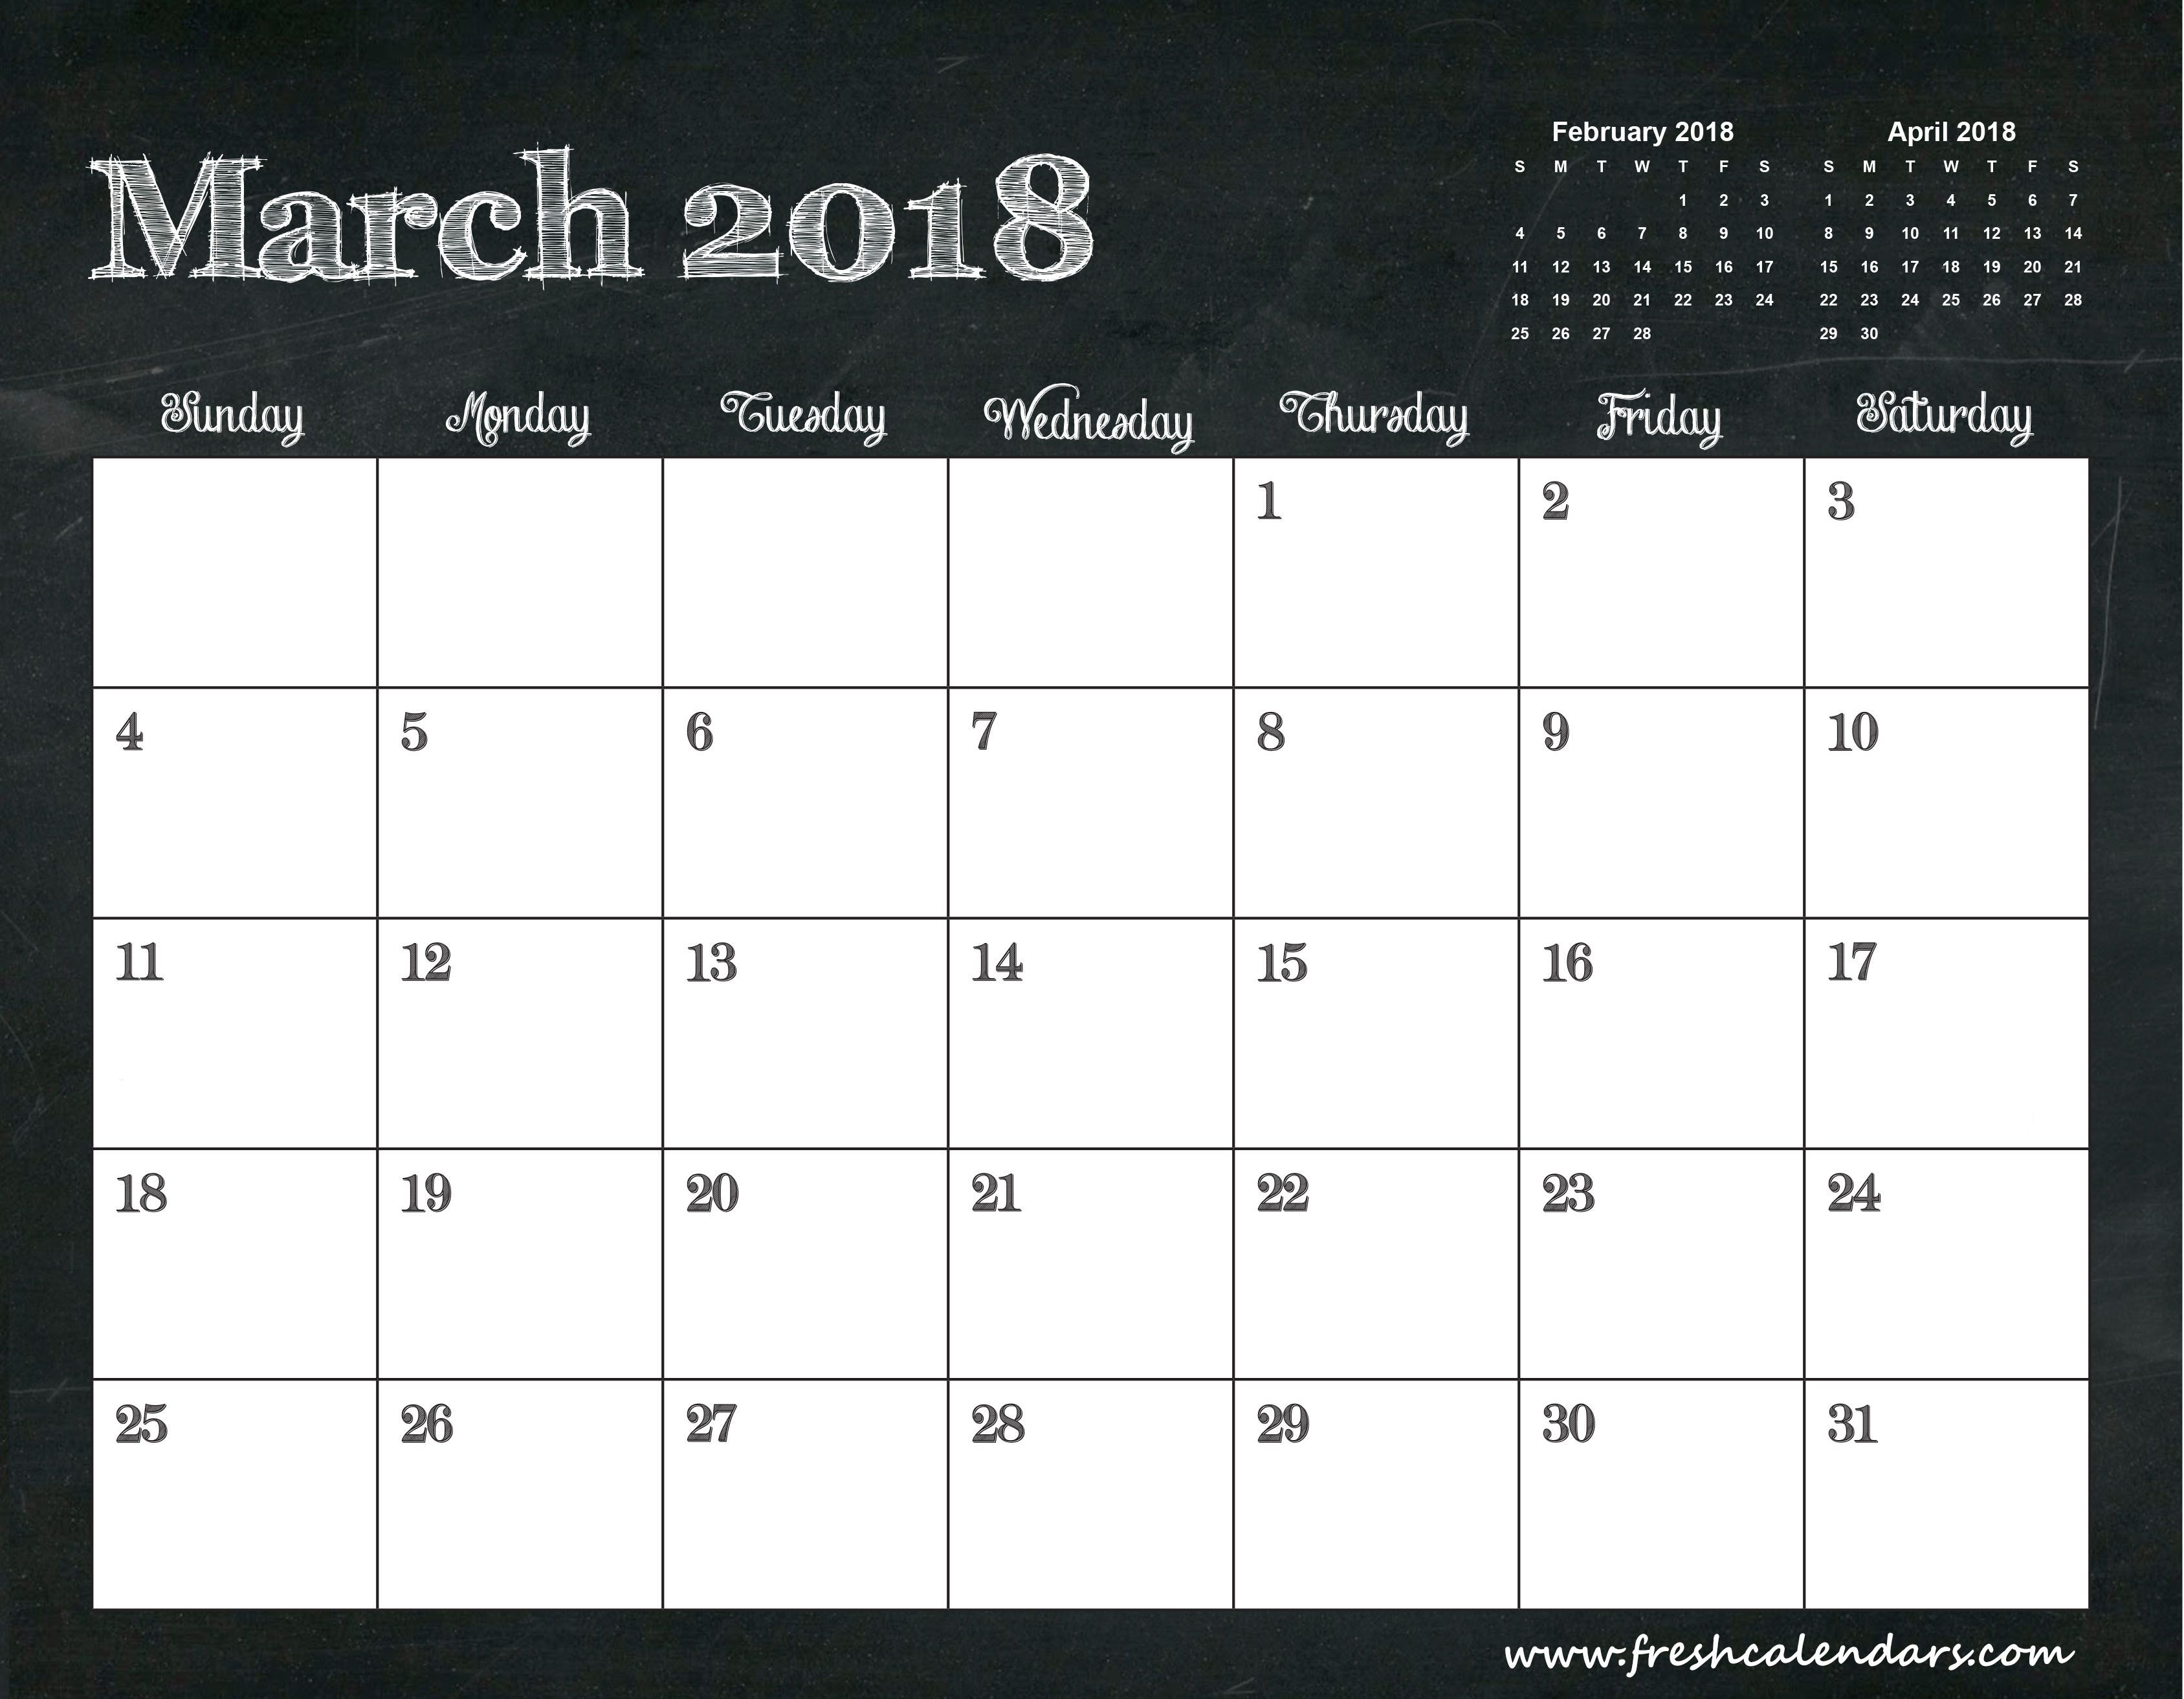 2018 March Calendar Printable 3 Months Template